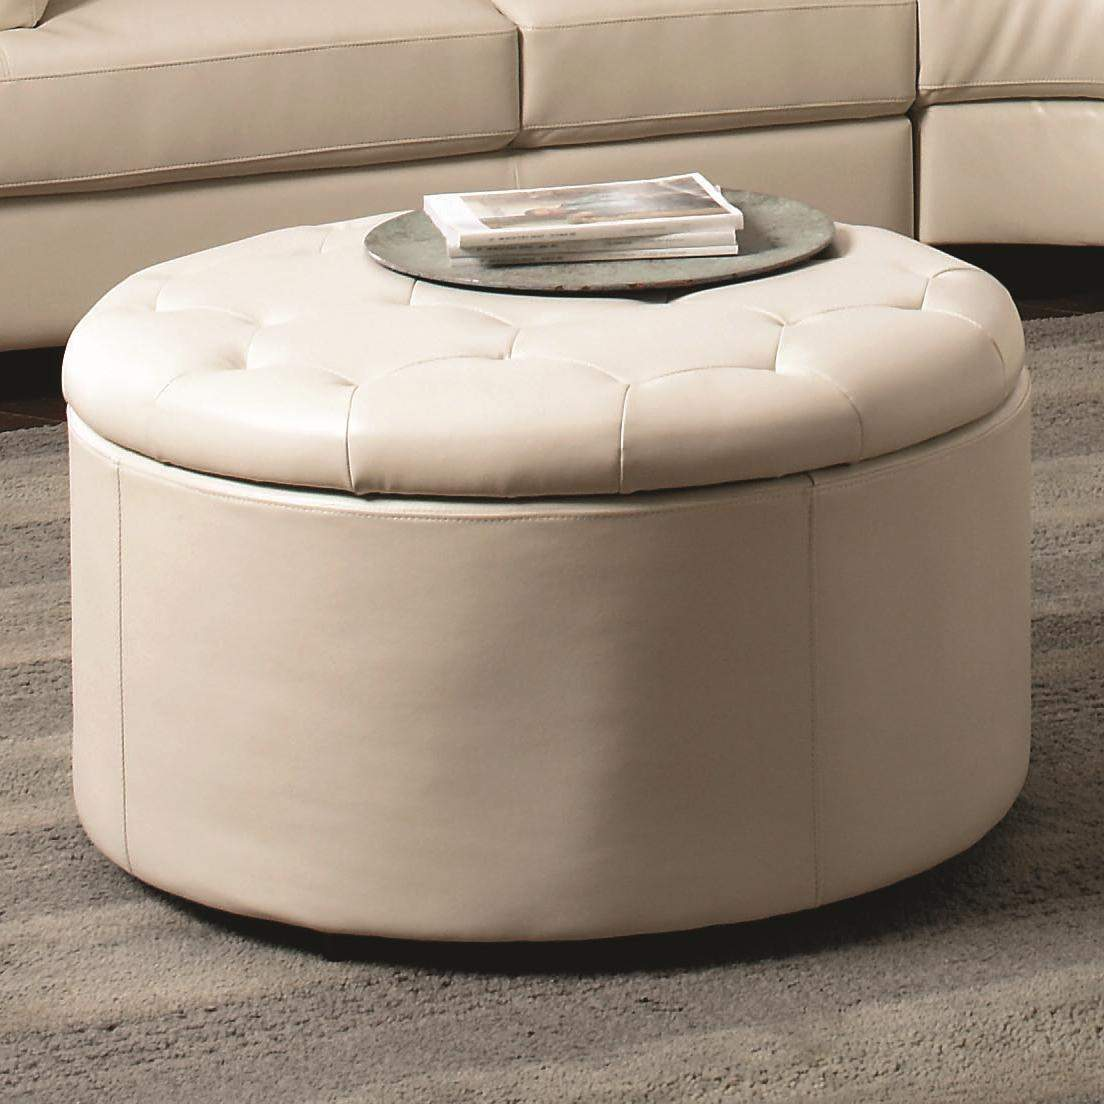 Soft Coffee Table With Storage Landen Round Leather Storage Ottoman With Button Tufted